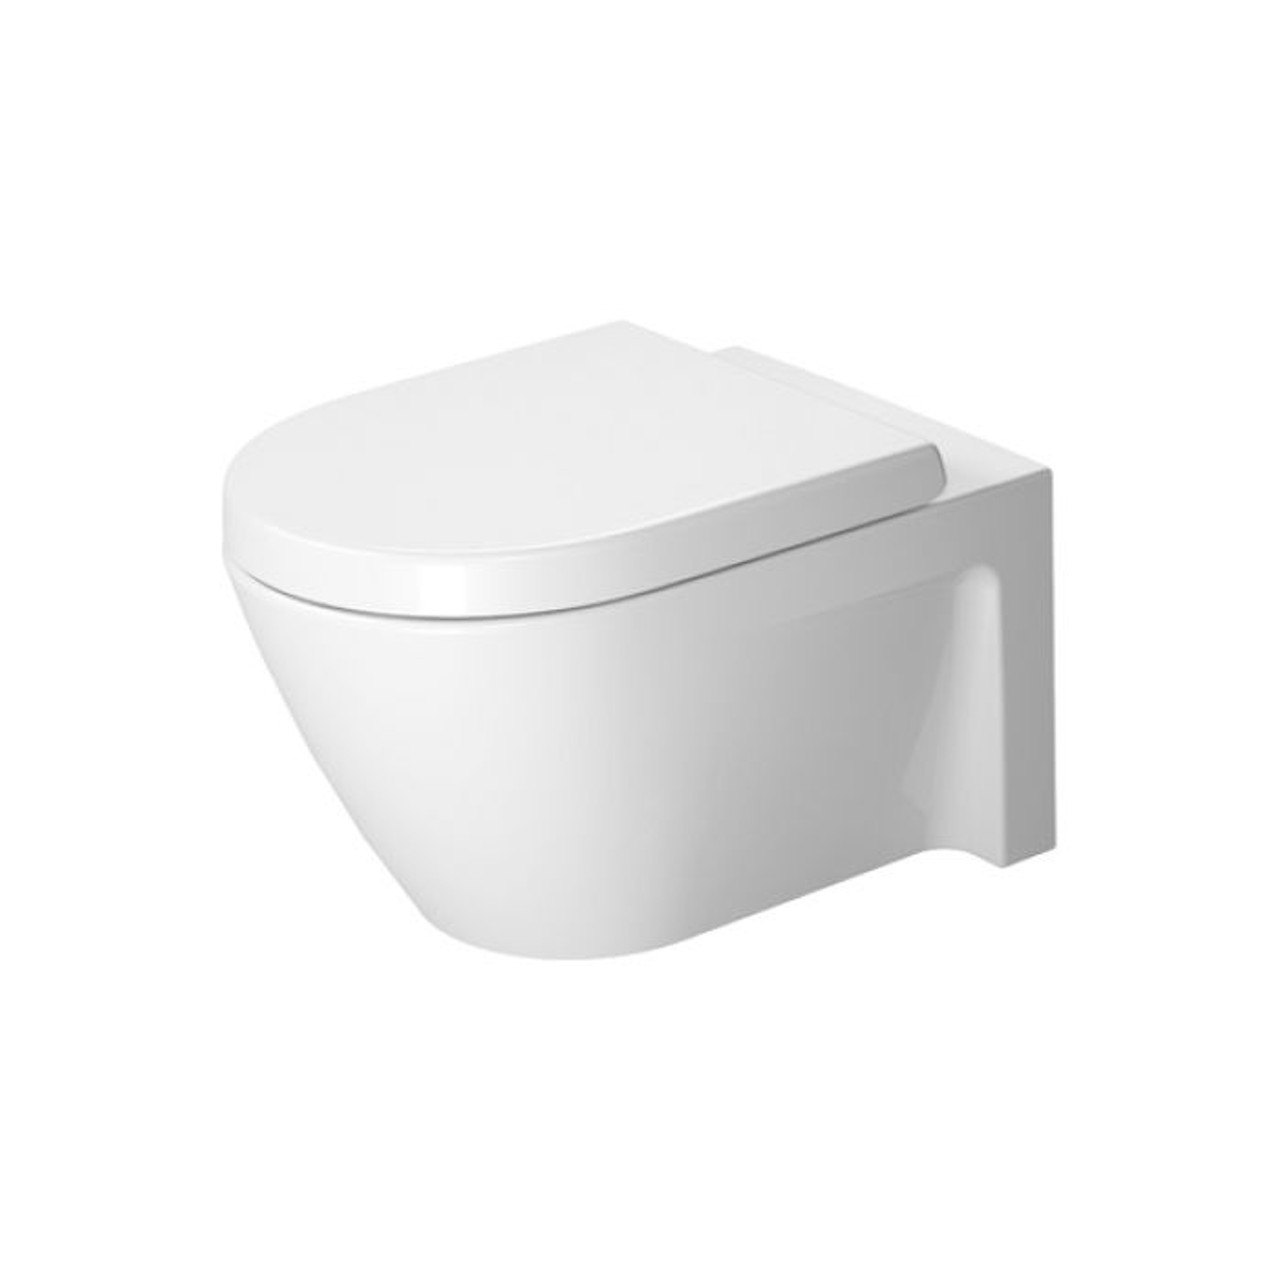 Duravit 253409 Starck 2 Wall Mounted Toilet - York Taps